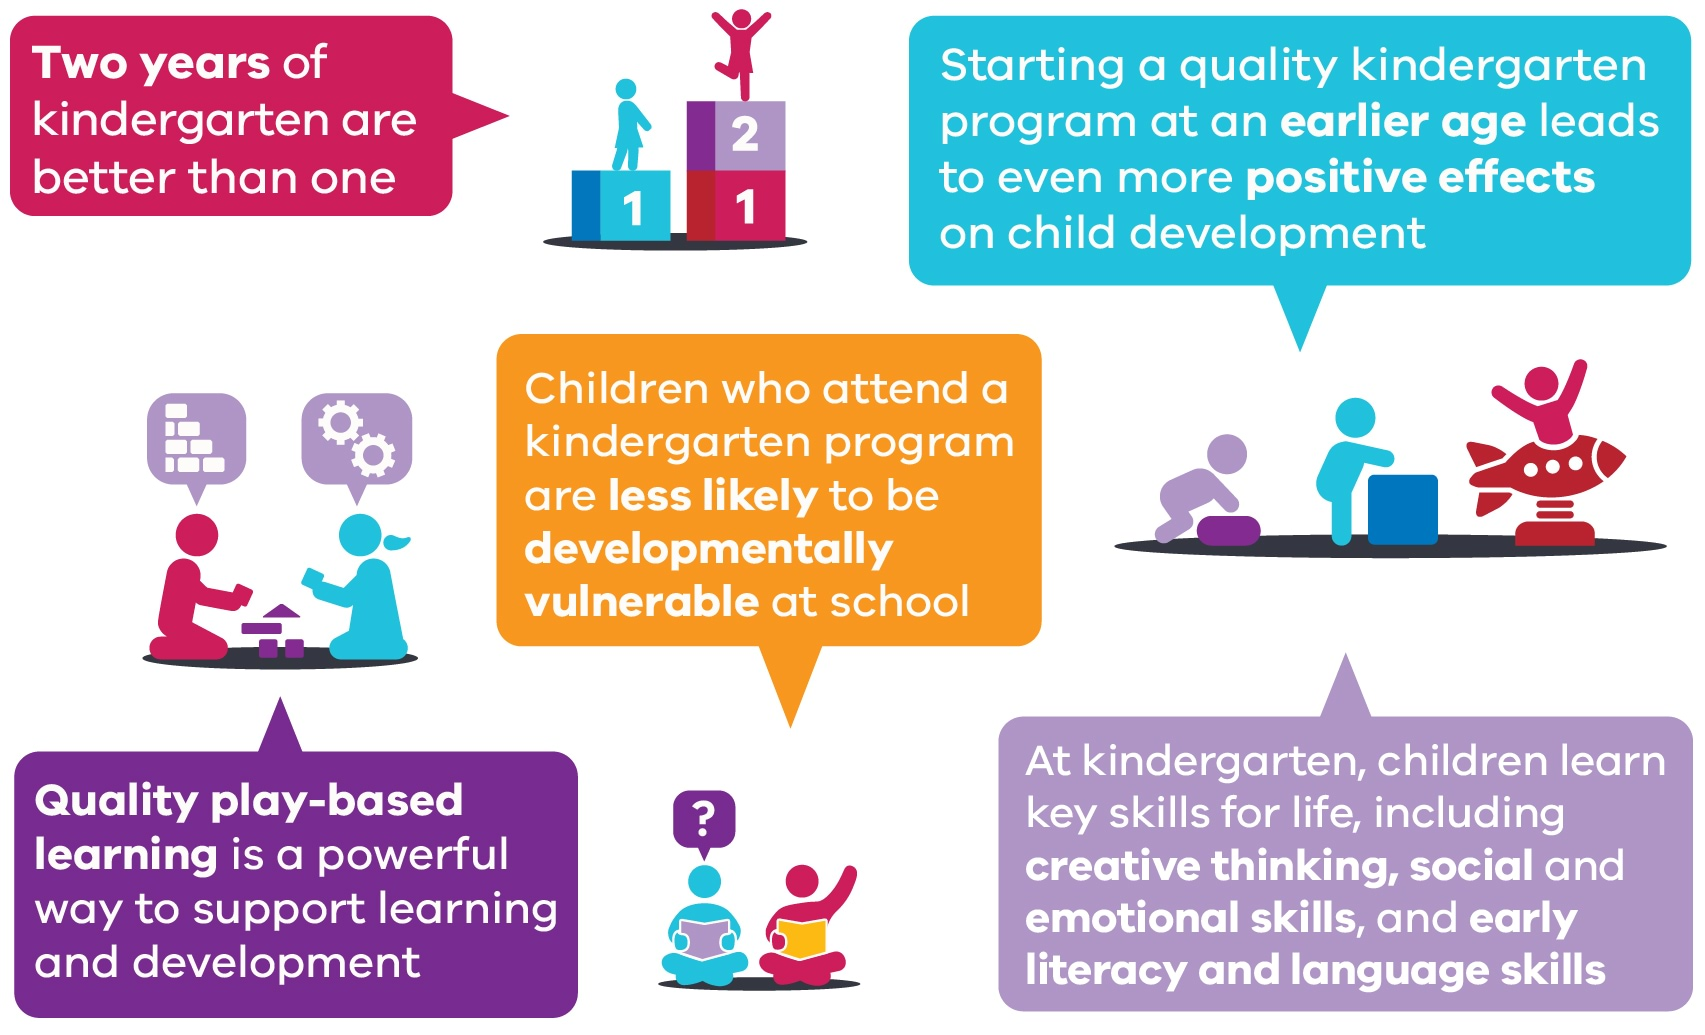 Research shows two years of kindergarten will give Victorians the best start in life. Two years of kindergarten are better than one. It leads to even more positive effects on child development. Children who attend a kindergarten program are less likely to be developmentally vulnerable at school. Quality play-based learning is a powerful way to support learning and development. Key skills for life. Creative thinking, social and emotional skills, early literacy and language skills.